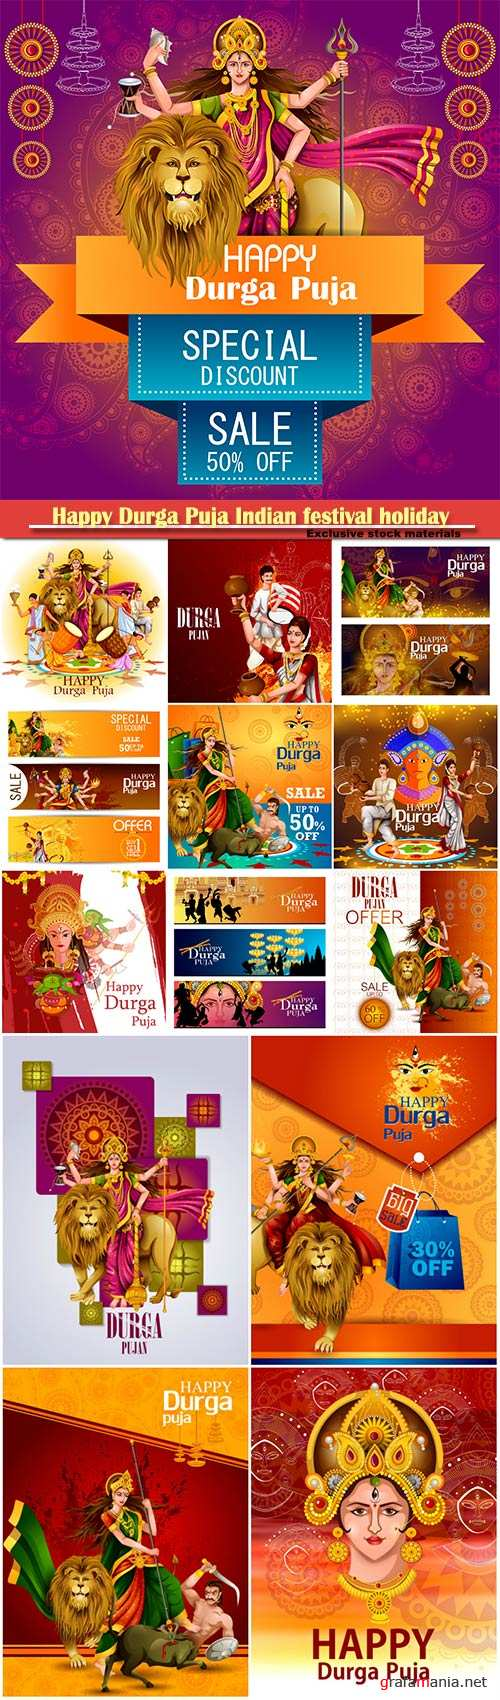 Happy Durga Puja Indian festival holiday vector background # 5